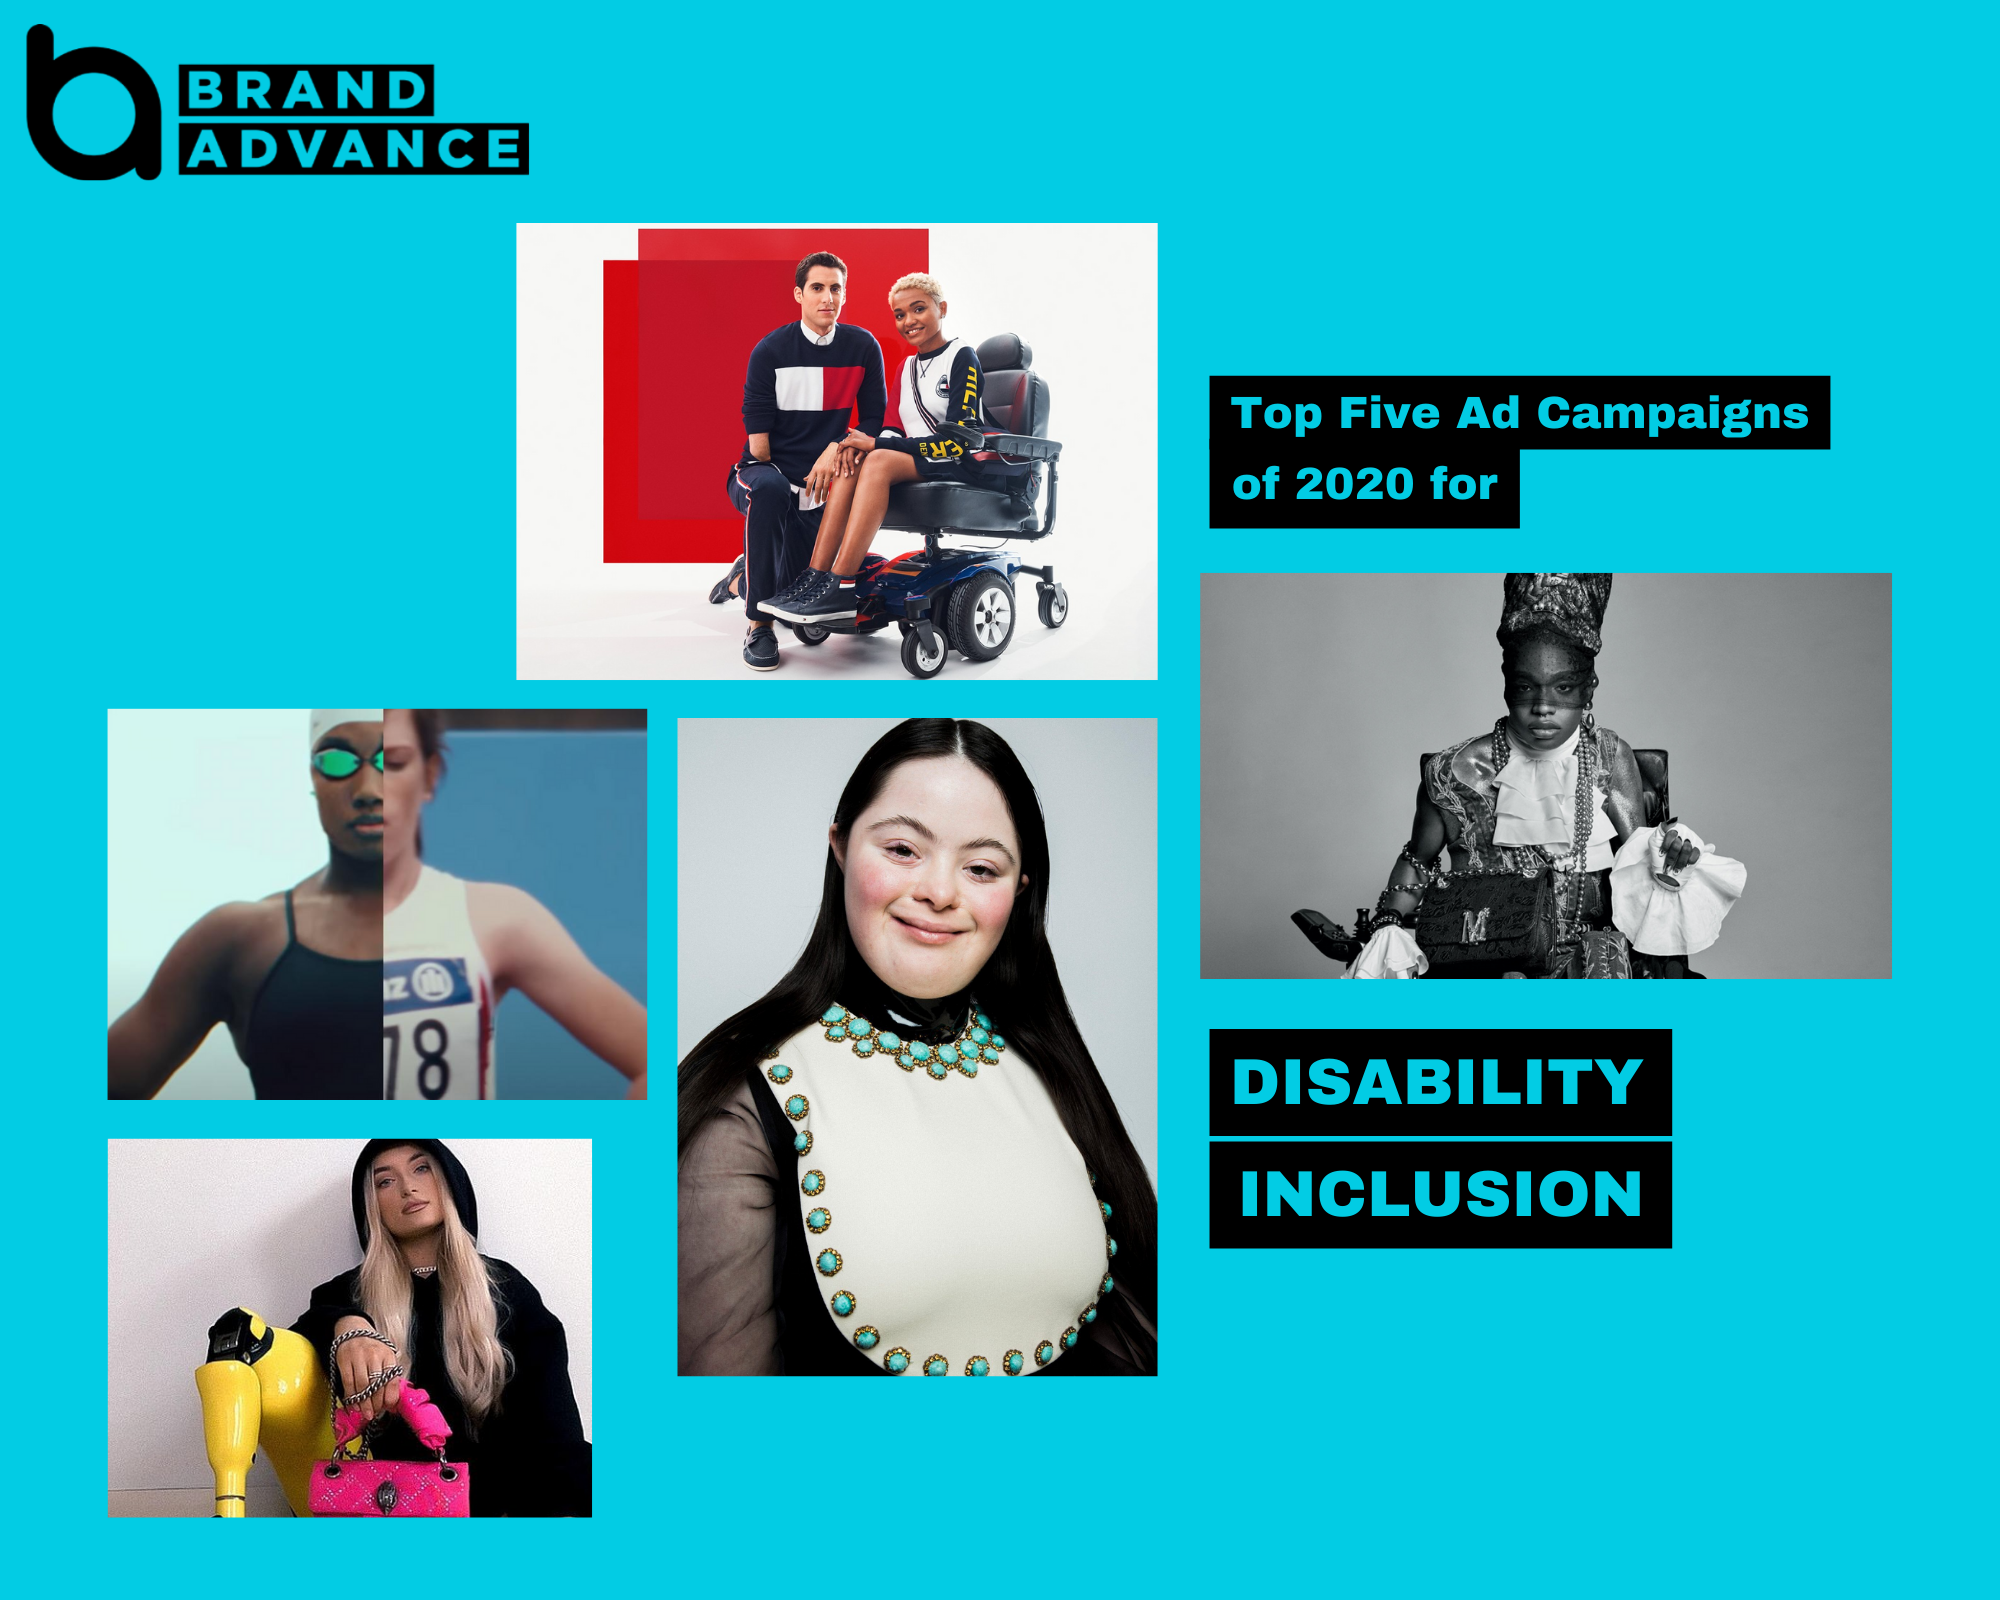 TOP FIVE AD CAMPAIGNS 2020 FOR DISABILITY INCLUSION